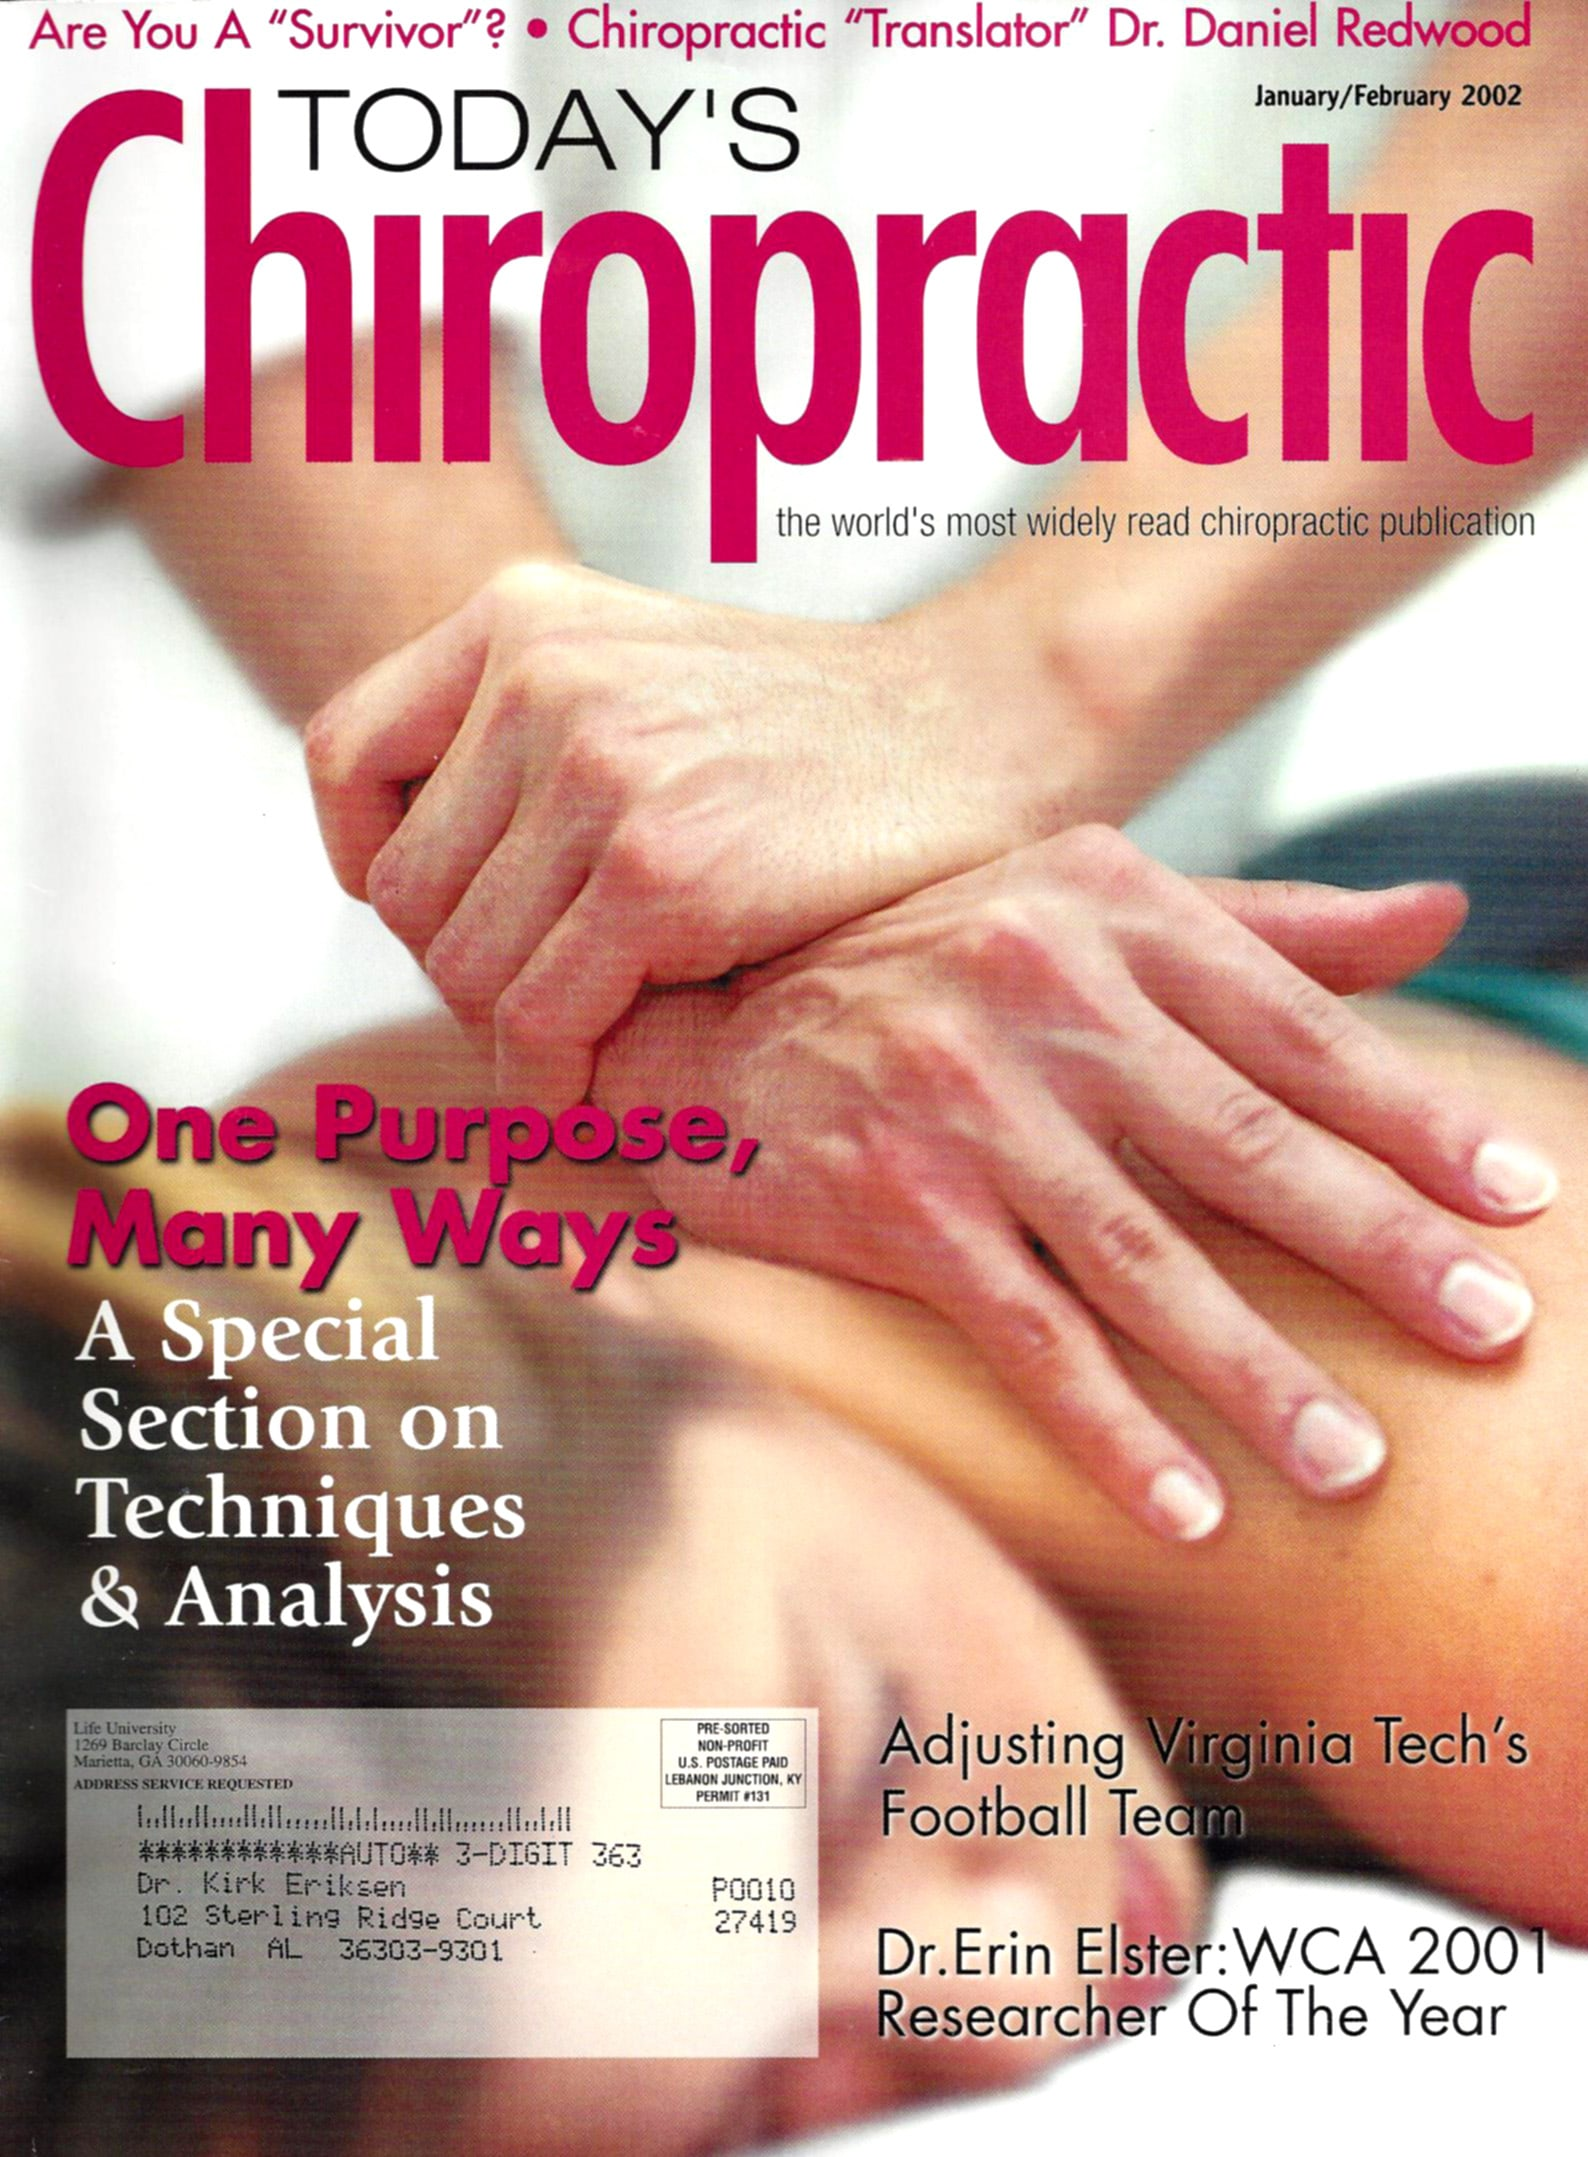 Today's Chiropractic January - February 2002